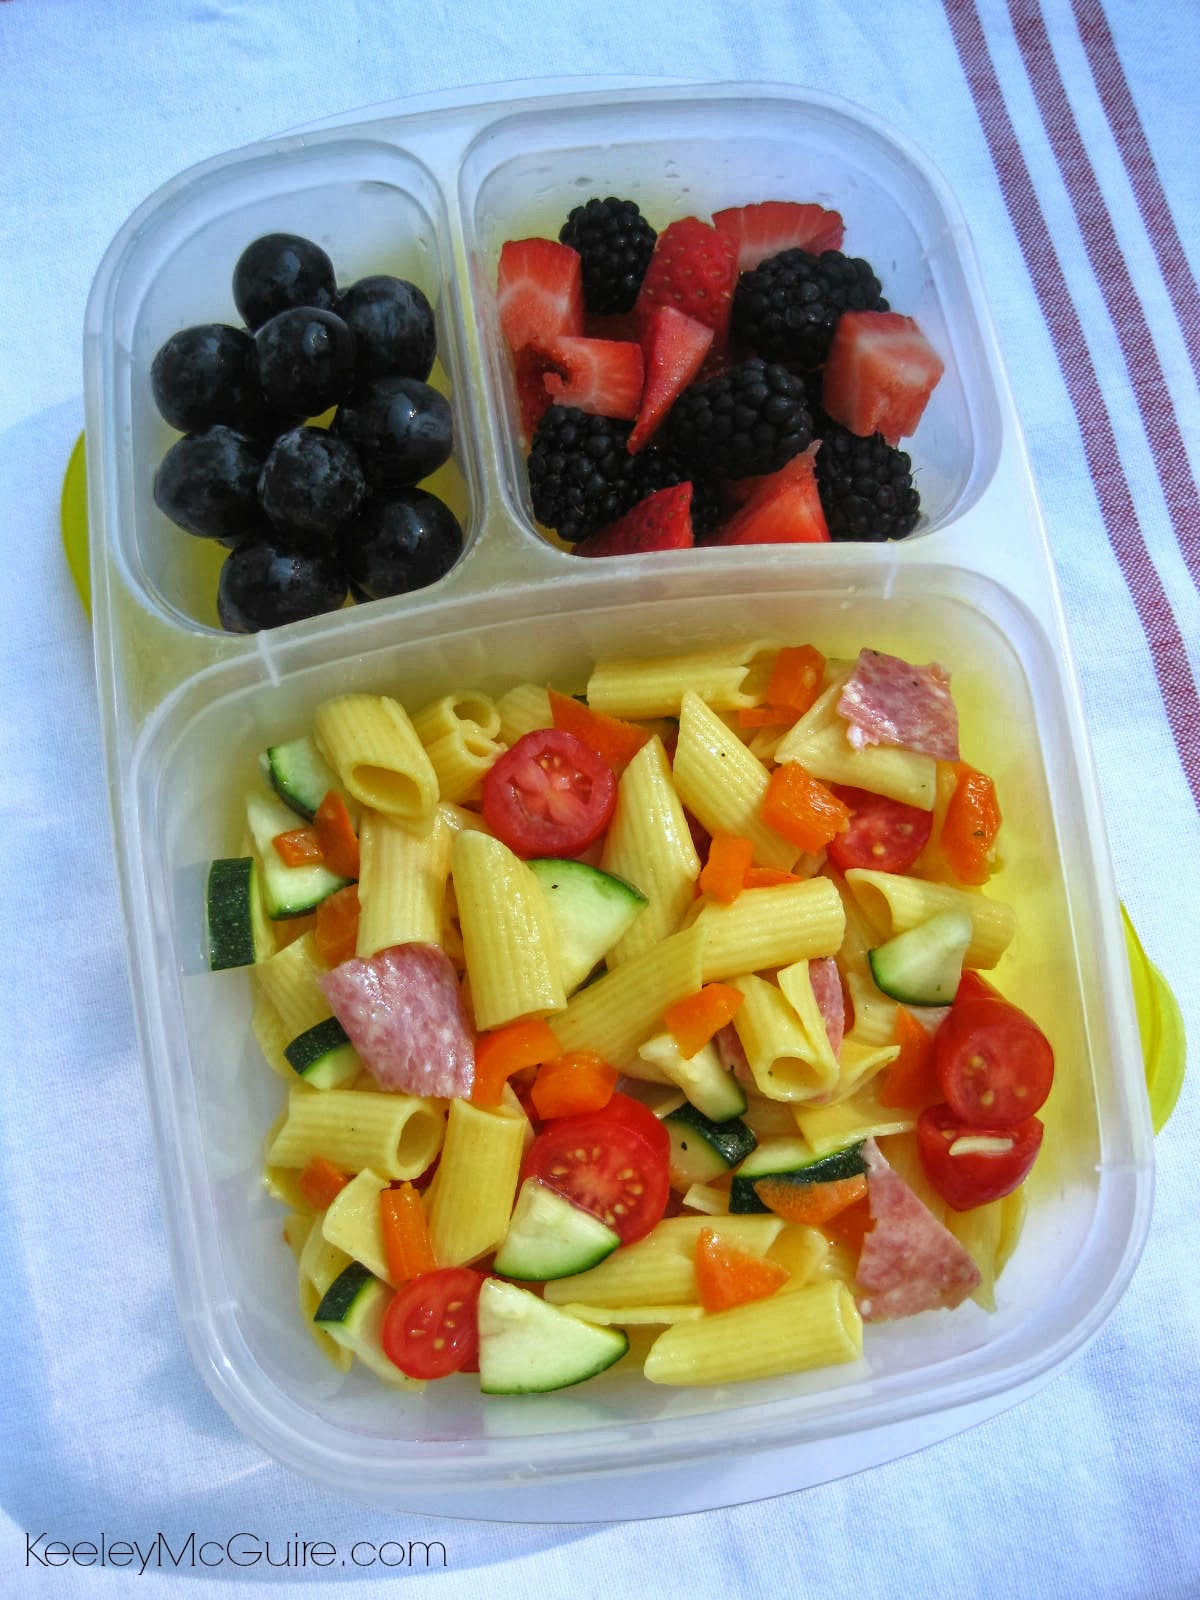 Gluten free allergy friendly lunch made easy over 25 for Cold pasta salad ideas